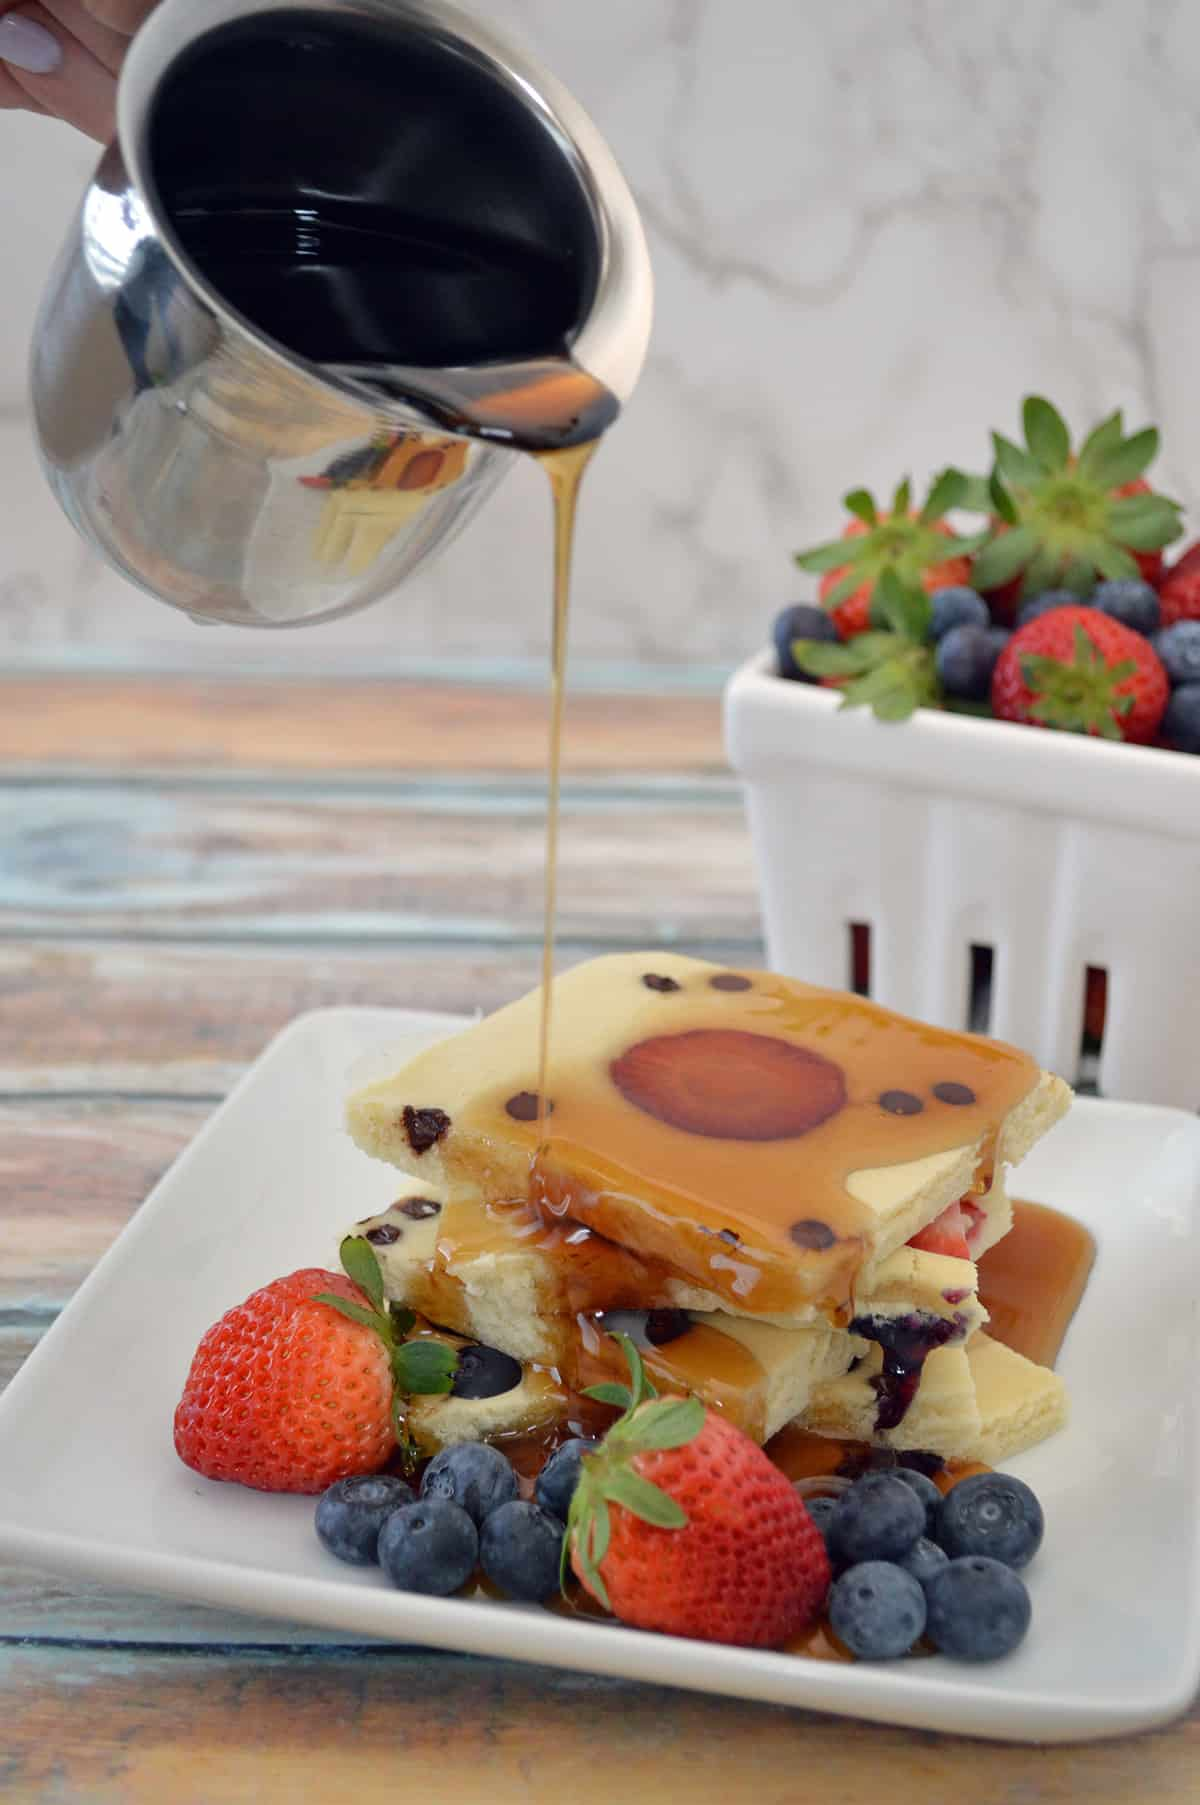 Syrup being poured on top of stack of sheet pan pancakes.